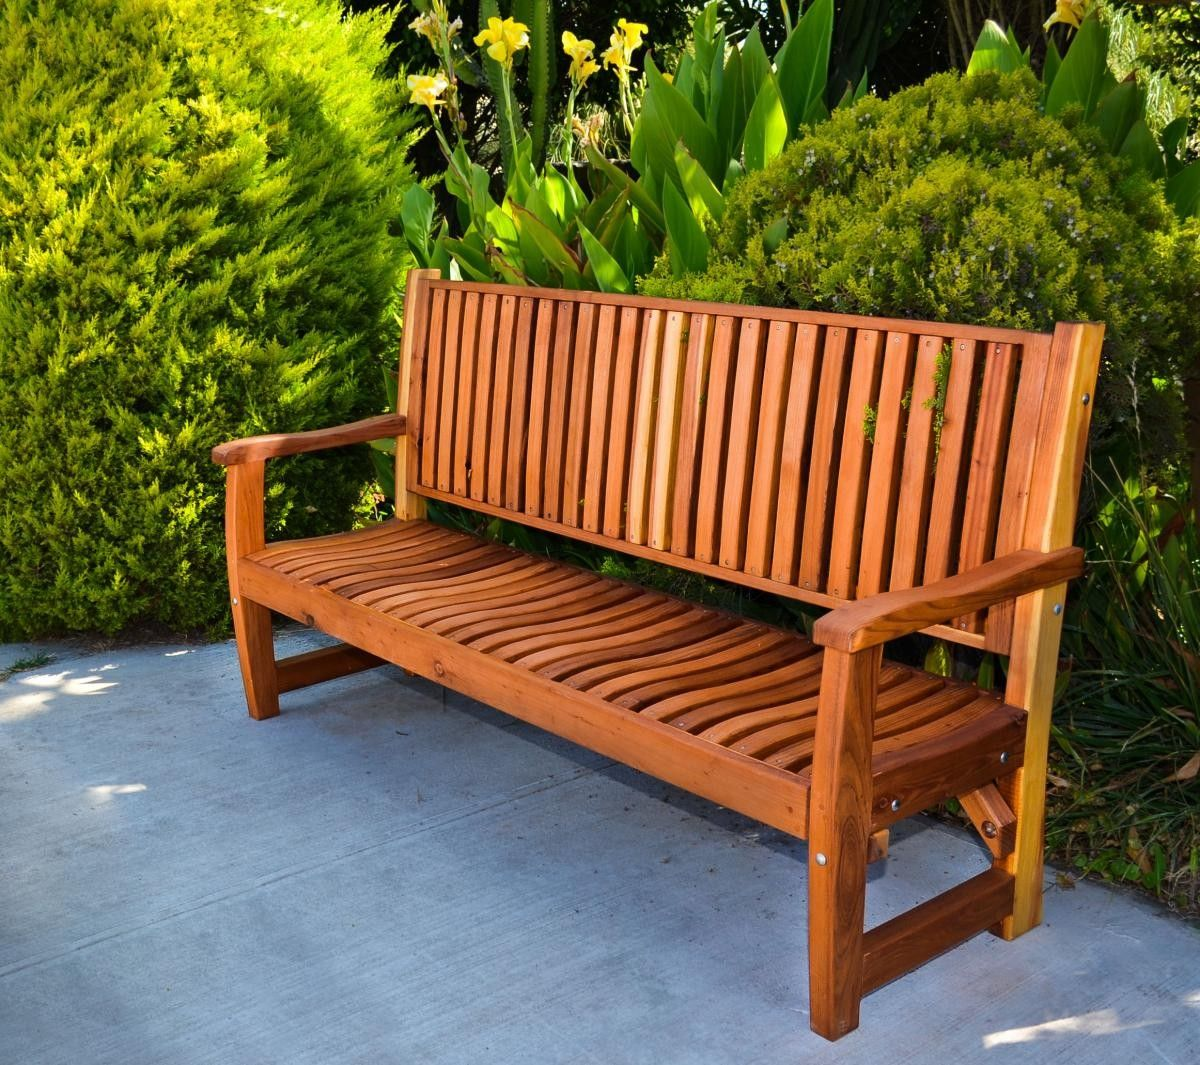 Wood Seating Benches Chairs Loungers Built To Last Wooden Bench Outdoor Wood Bench Outdoor Teak Outdoor Furniture